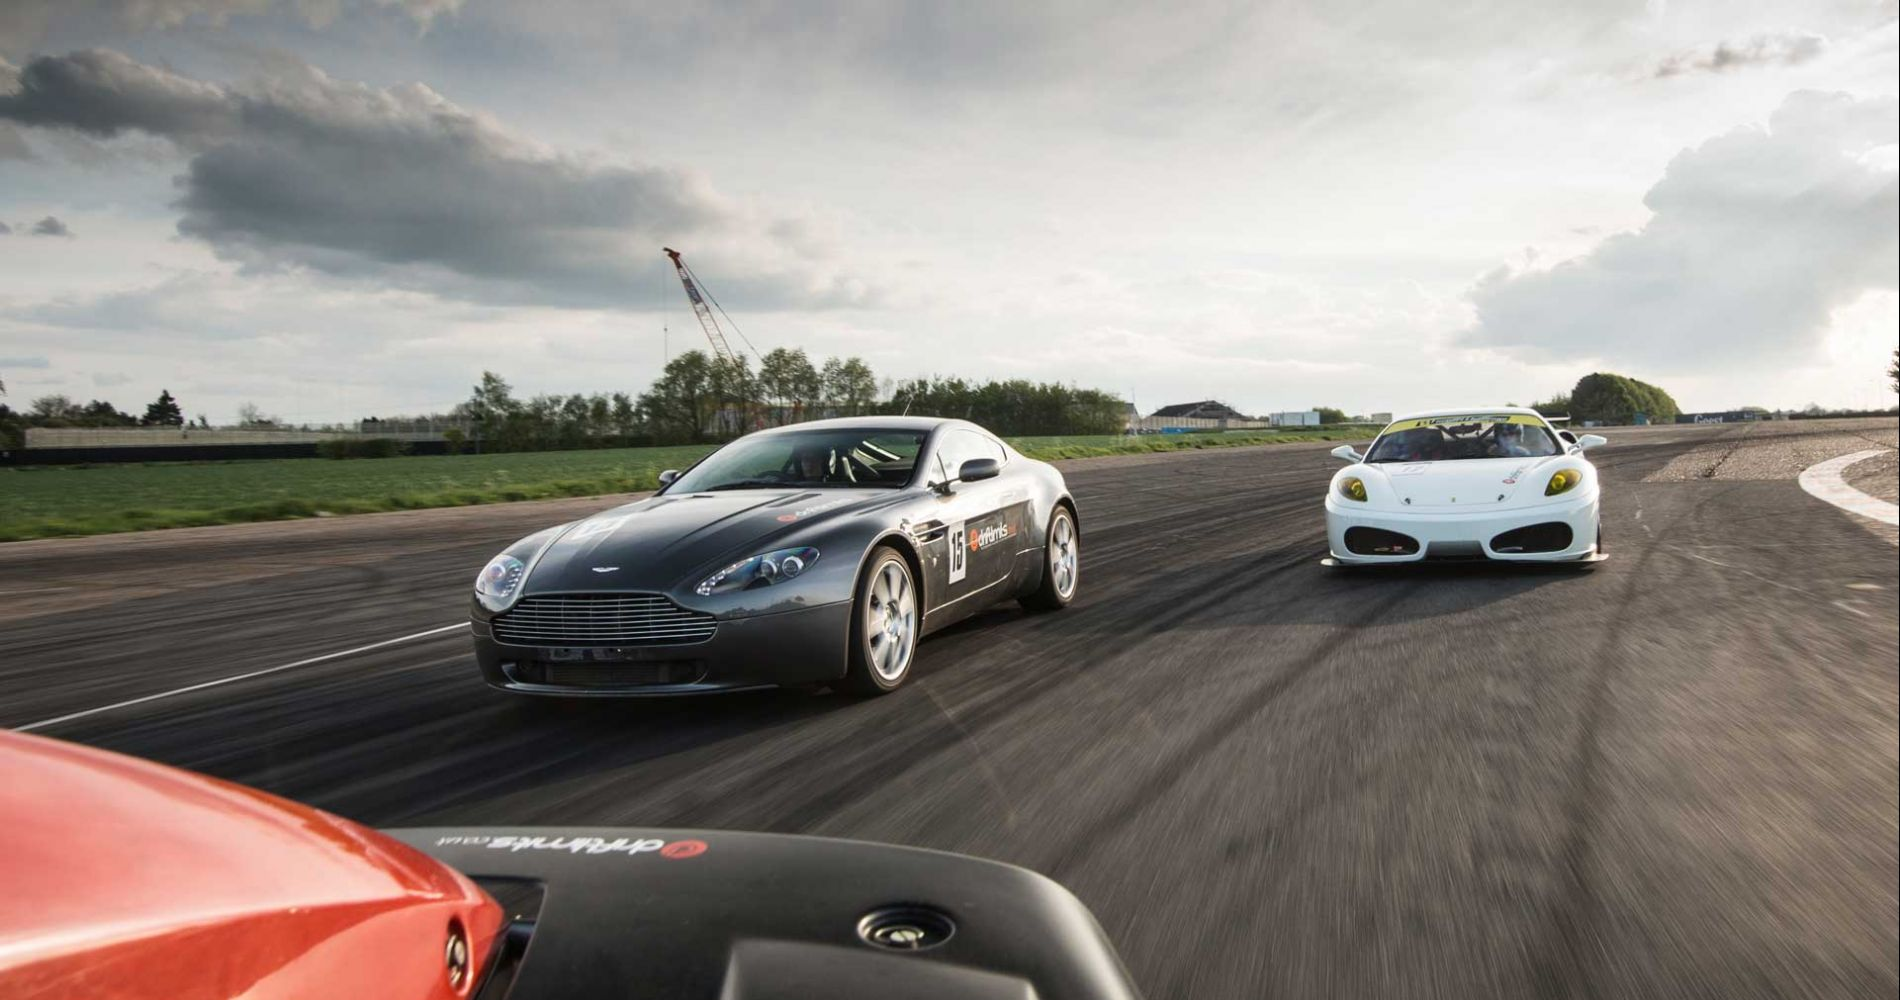 Supercar Five Driving experience at Brands Hatch